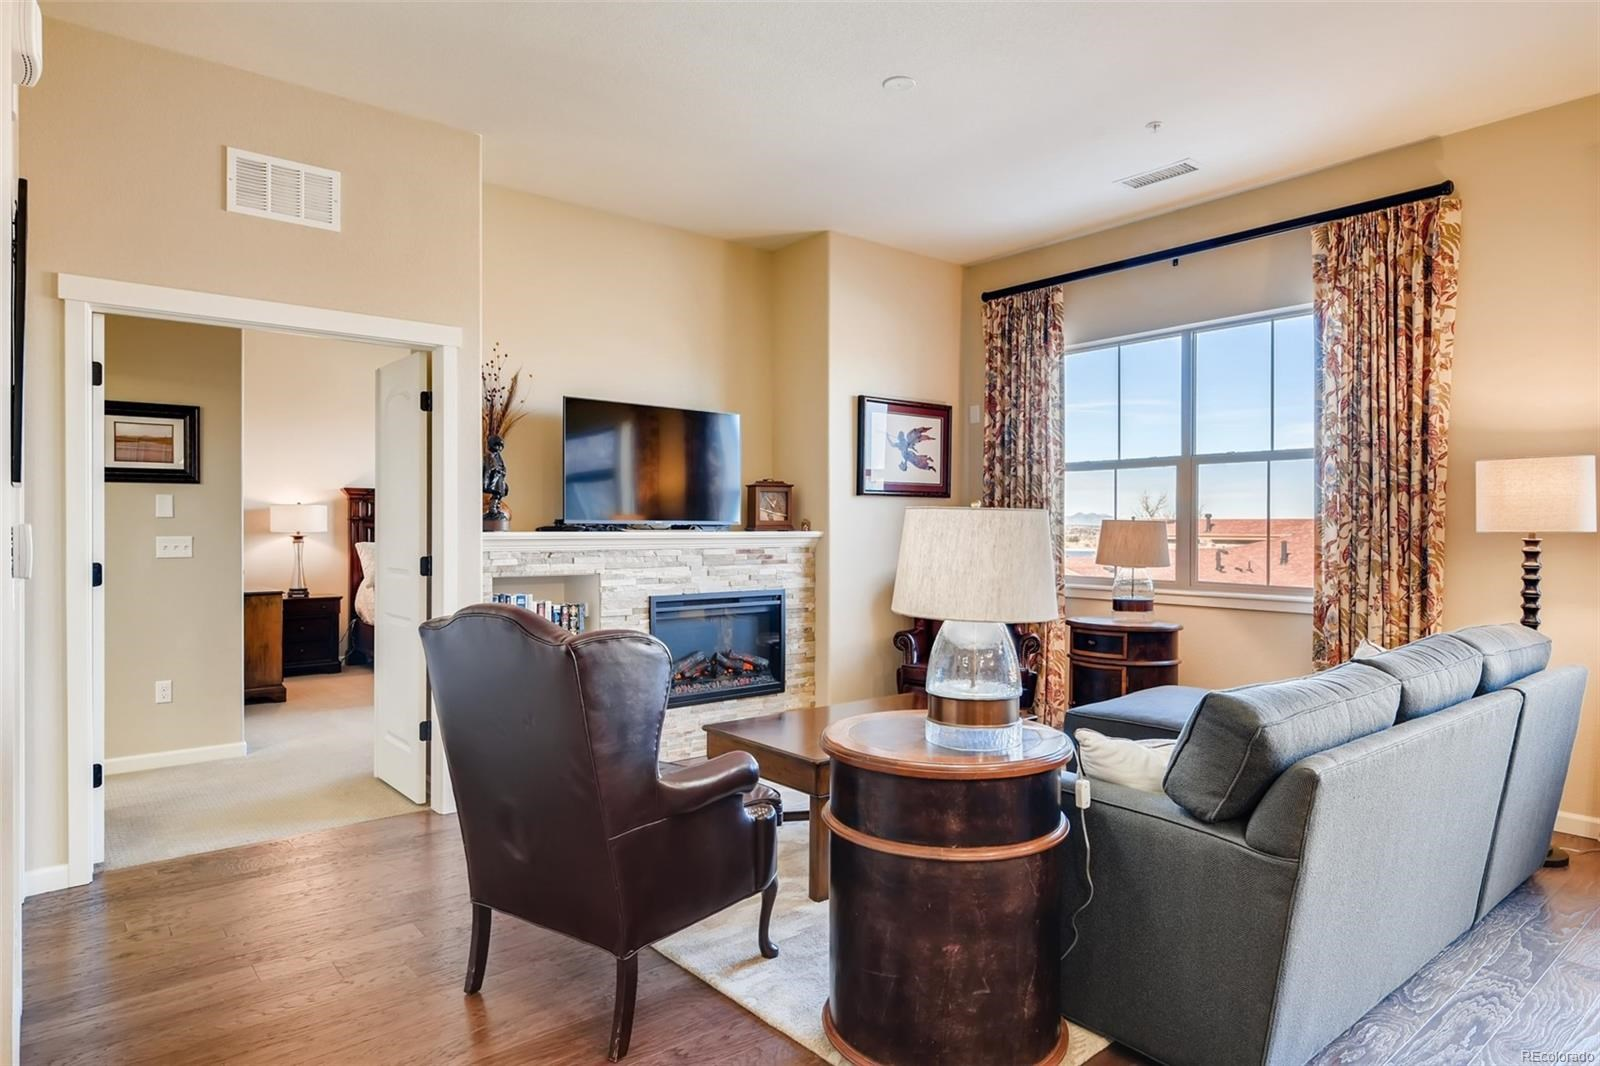 MLS# 6336333 - 4 - 2262 Primo Road #205, Highlands Ranch, CO 80129